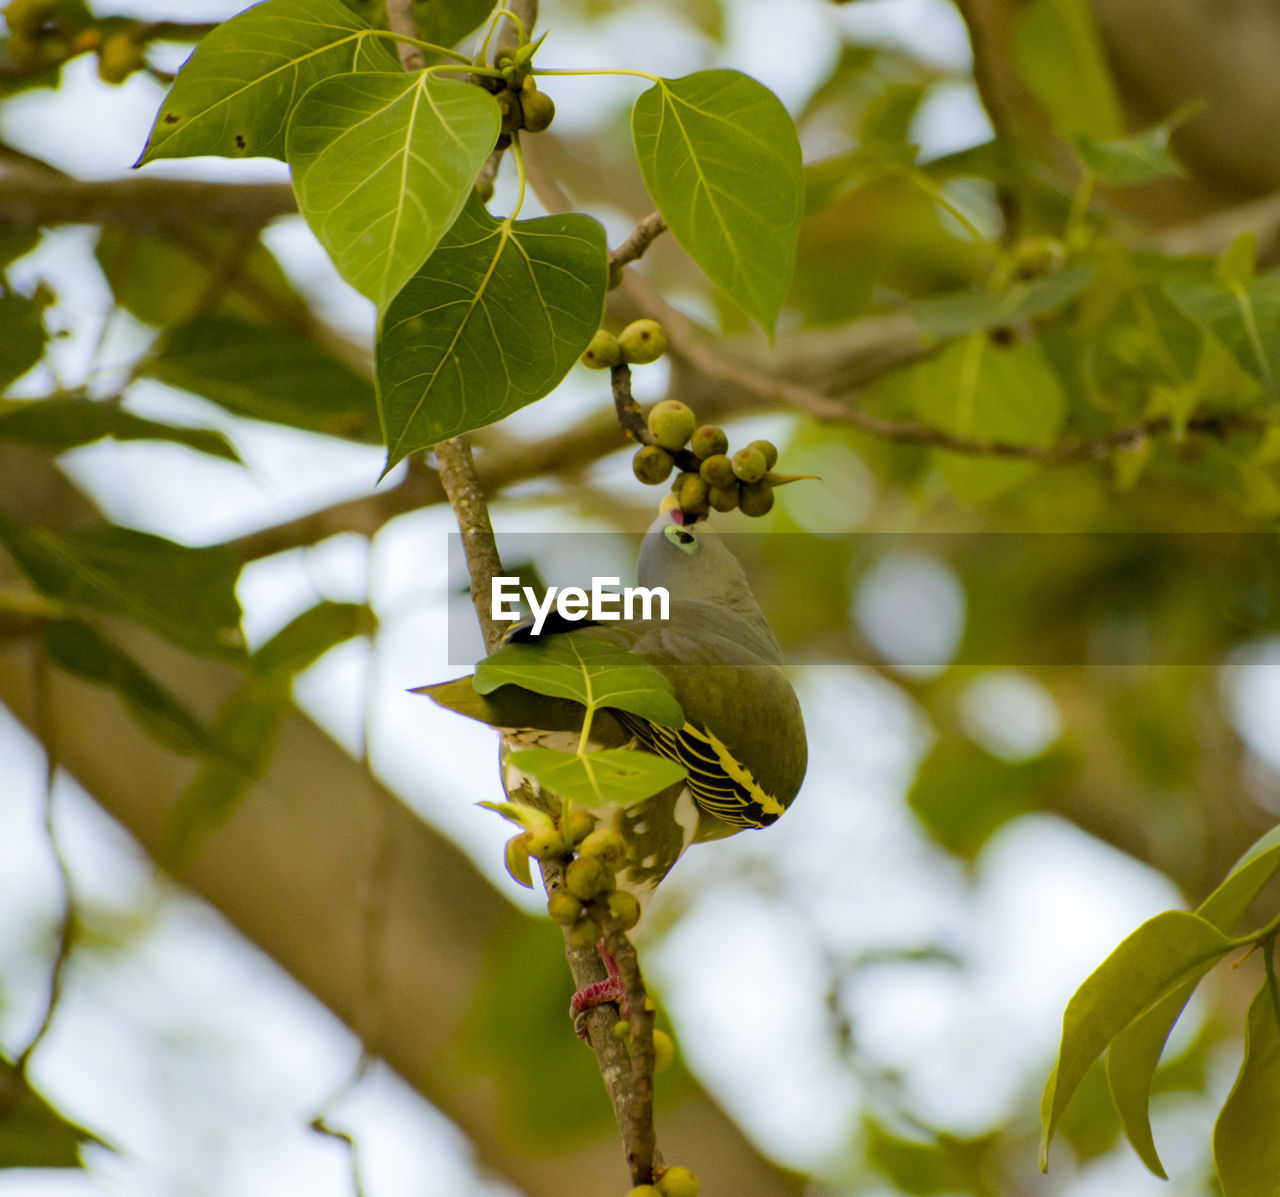 plant, growth, leaf, plant part, tree, green color, branch, focus on foreground, nature, beauty in nature, close-up, no people, food, day, fruit, food and drink, healthy eating, freshness, outdoors, low angle view